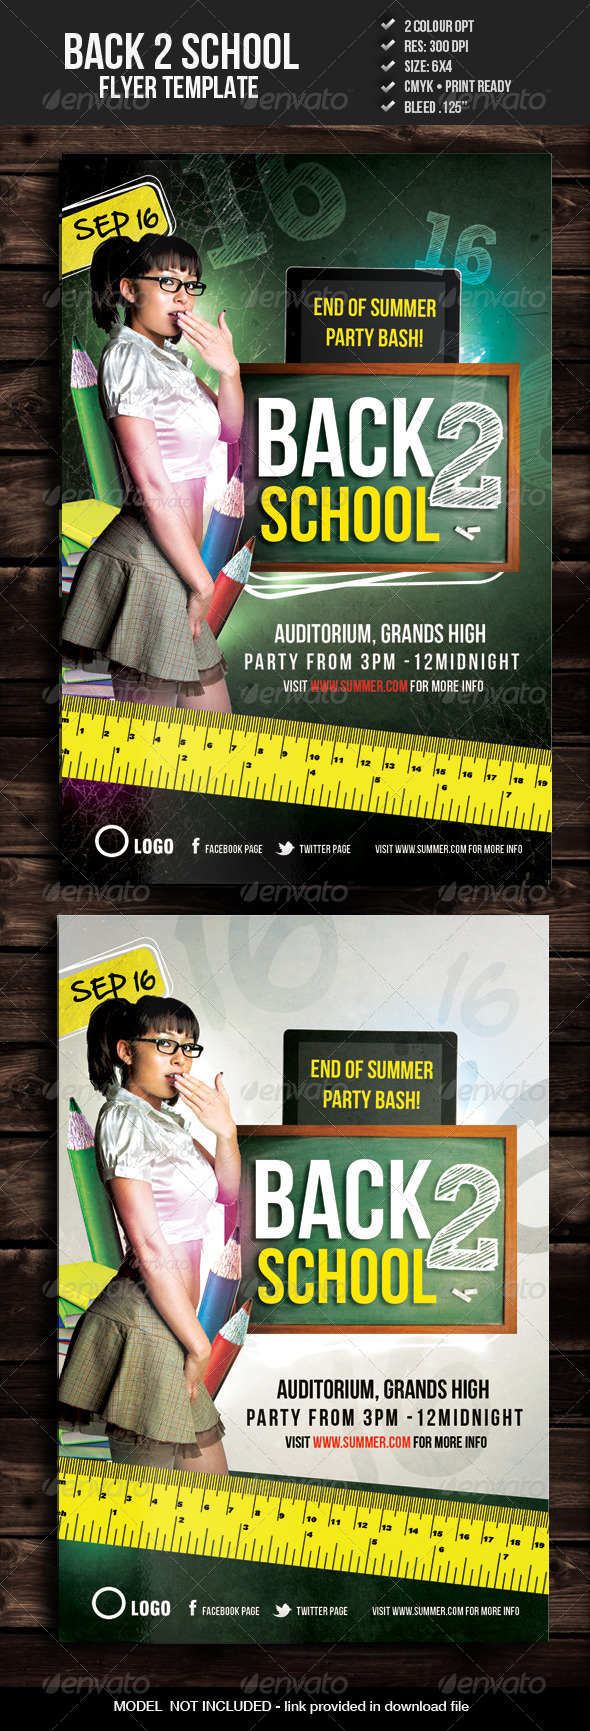 Back to School Party Flyer - Events Flyers